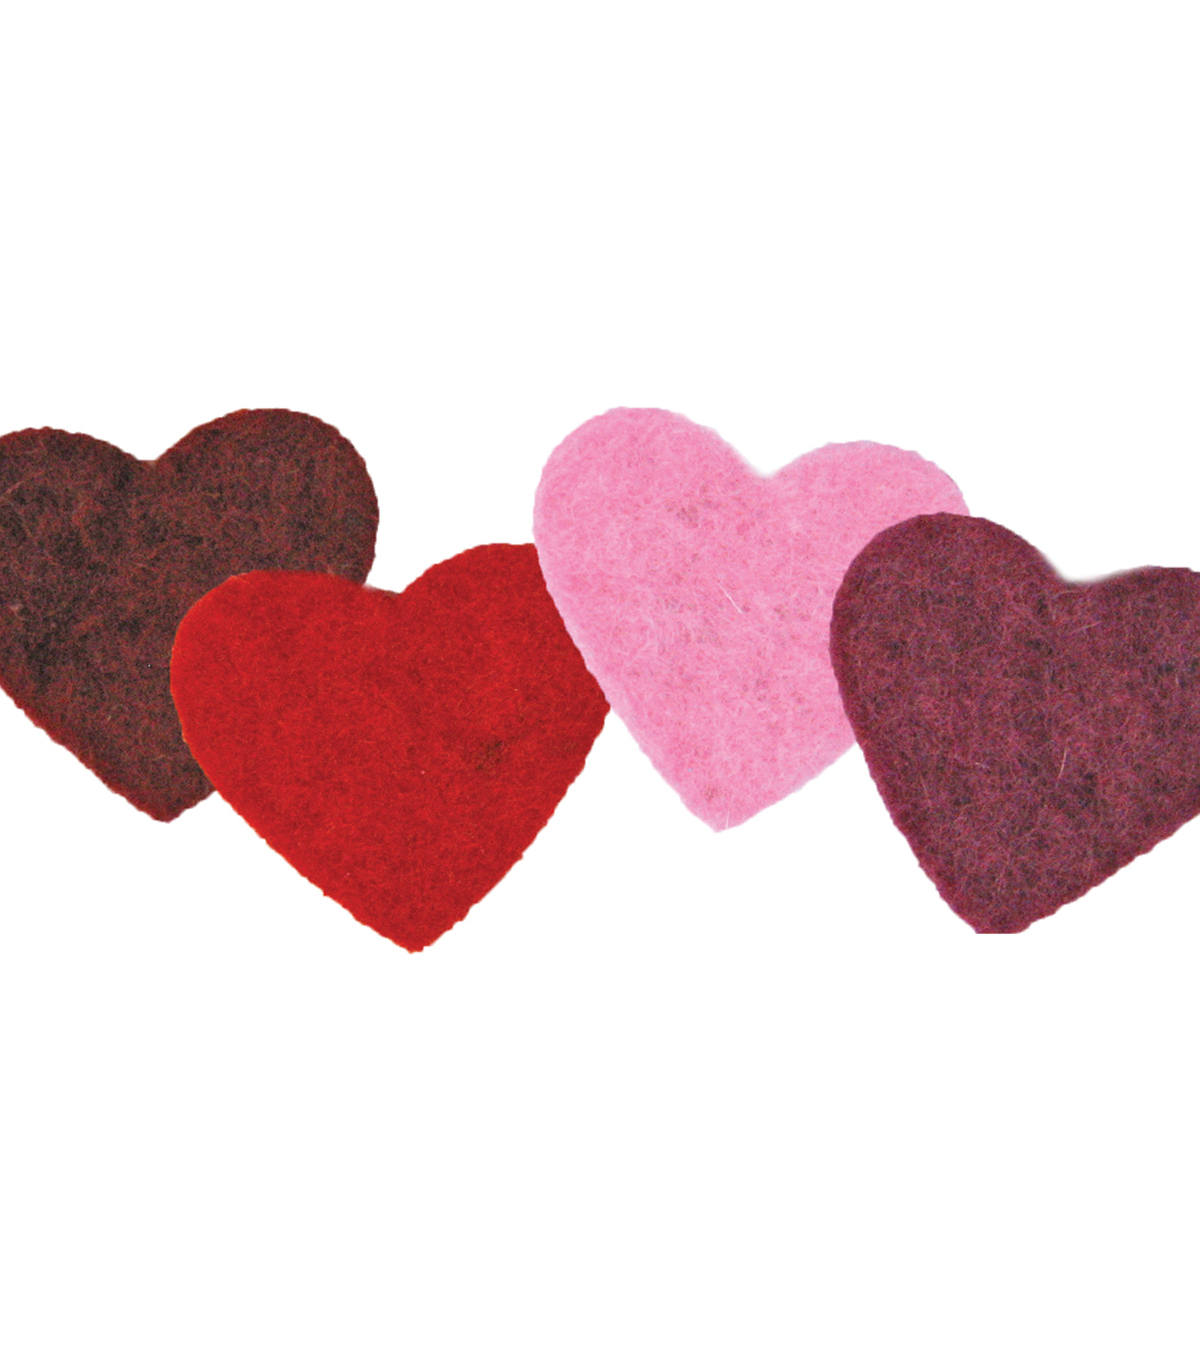 Feltworks Multicolor Hearts 4 Pack